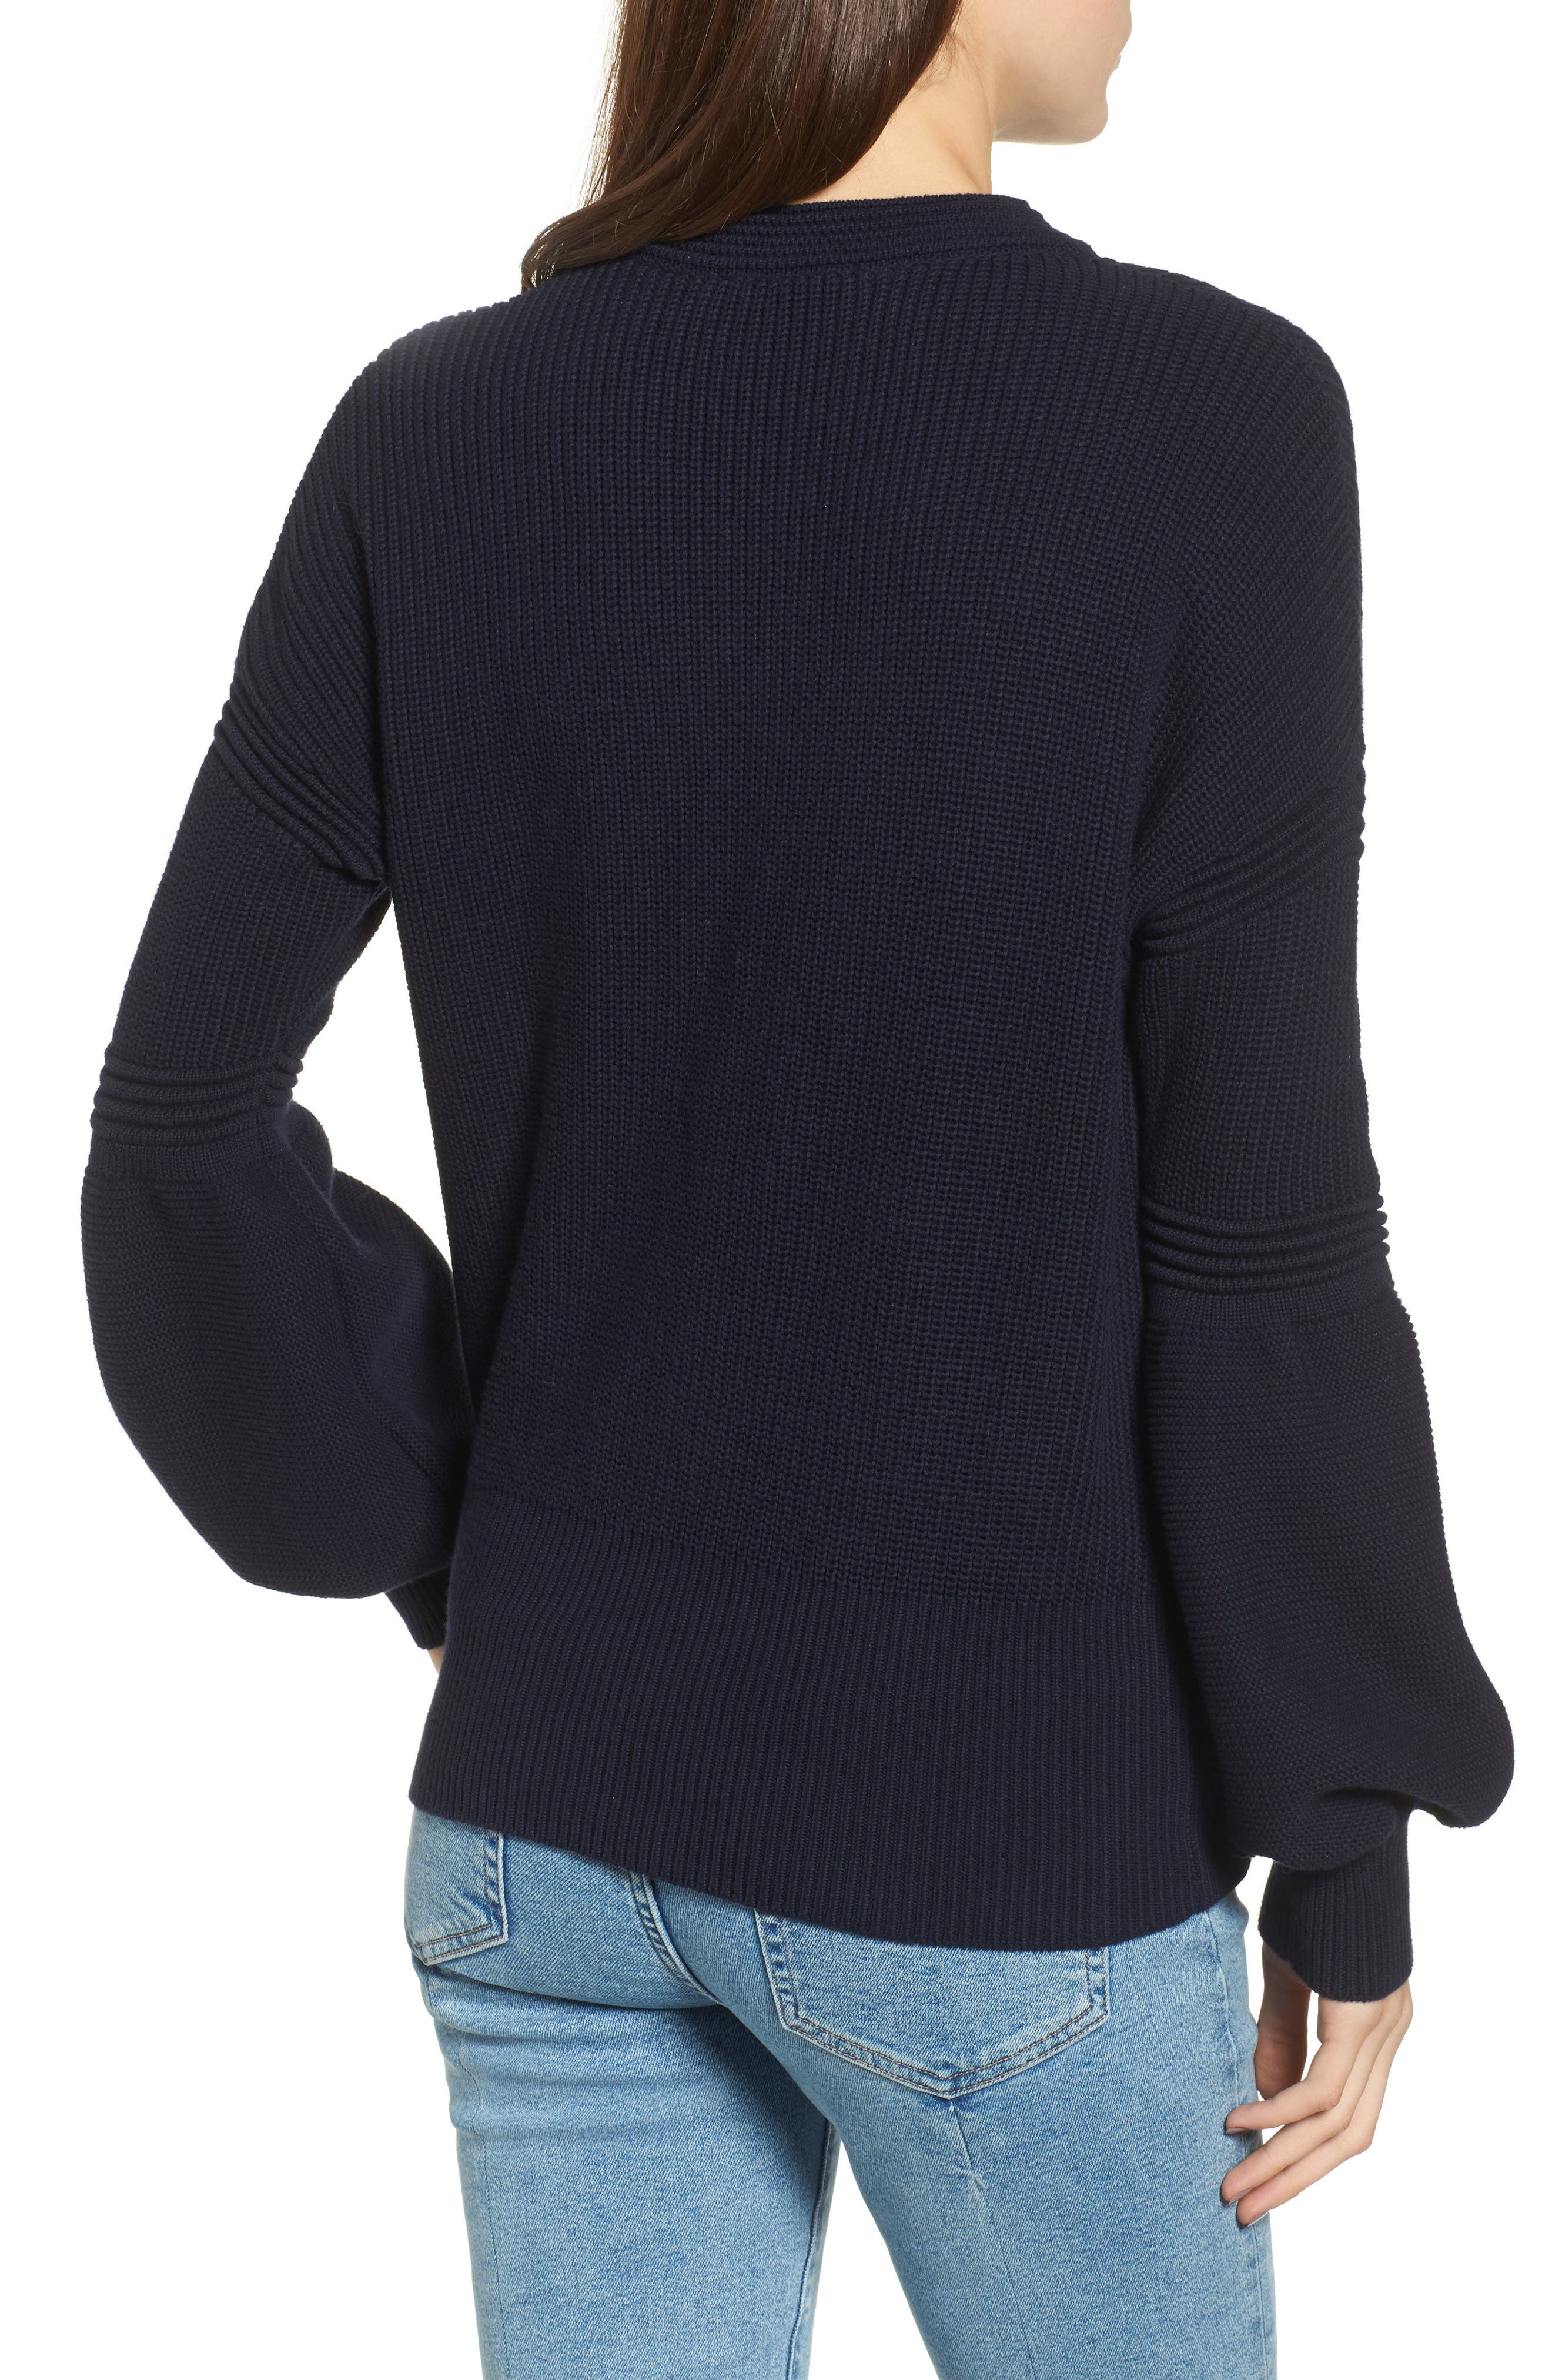 Sculpture Puff Sleeve Sweater,                             Alternate thumbnail 2, color,                             410